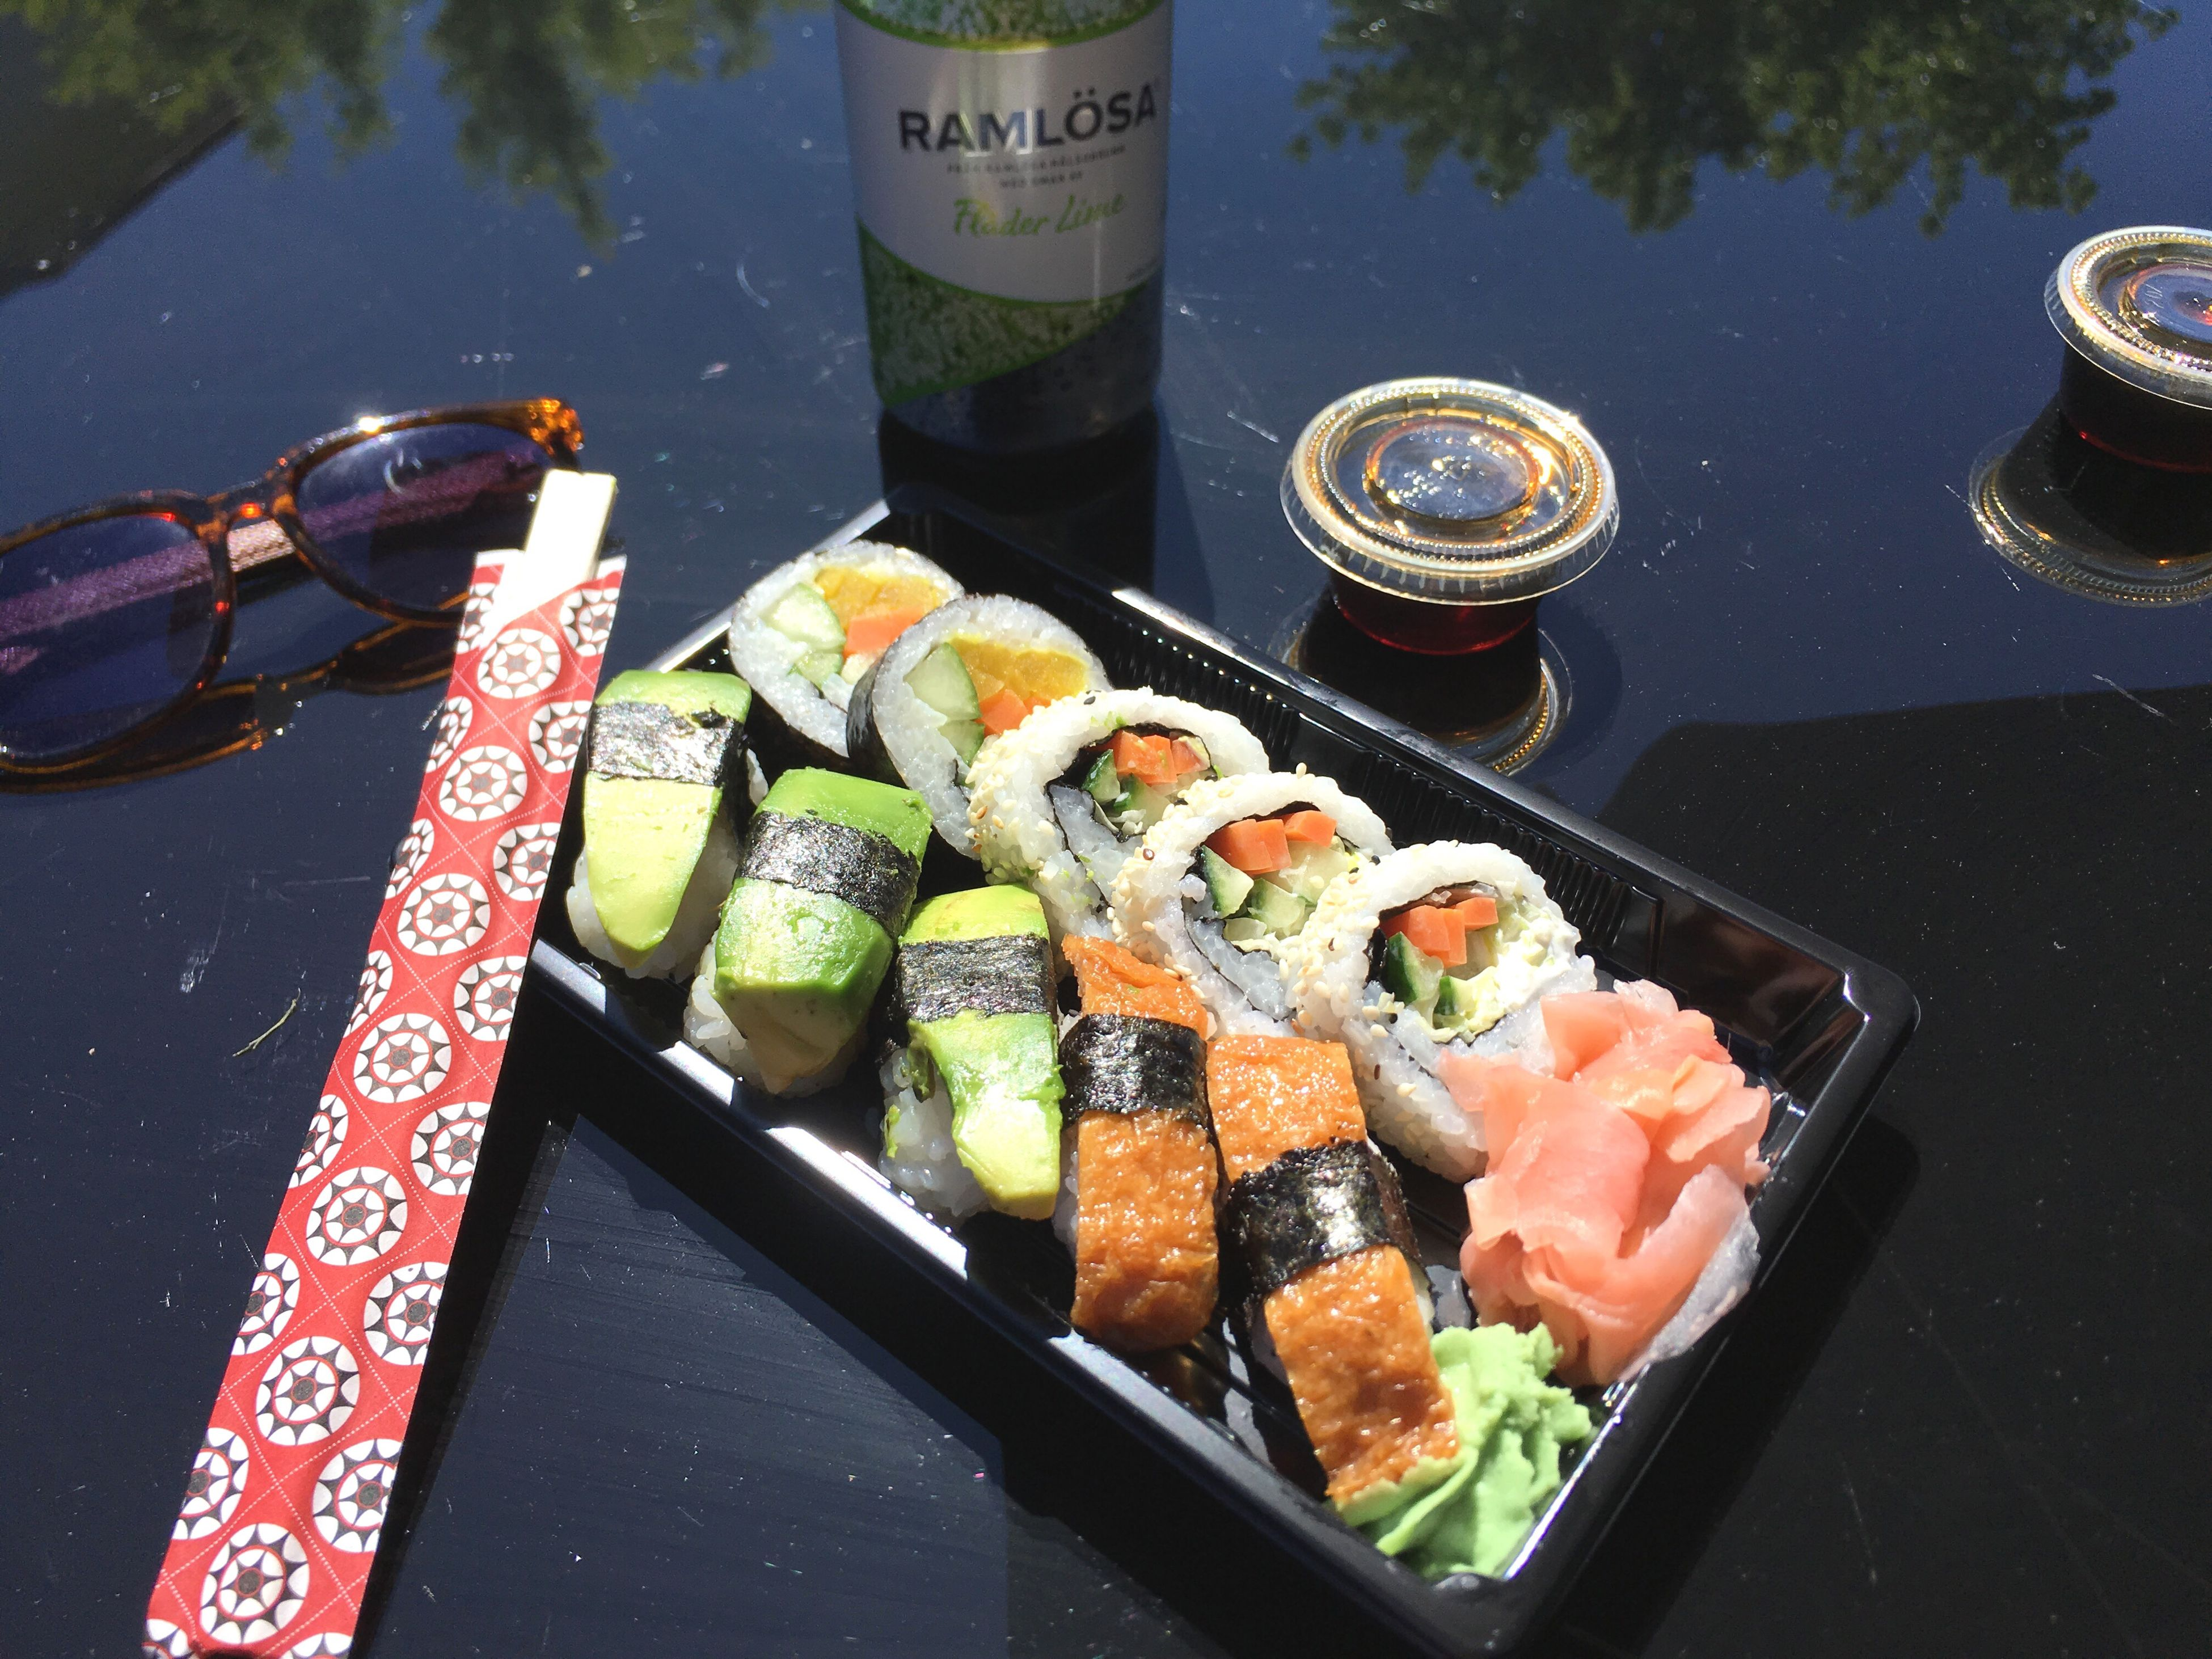 food and drink, japanese food, seafood, food, sushi, plate, high angle view, freshness, no people, healthy eating, chopsticks, day, drink, outdoors, sashimi, close-up, ready-to-eat